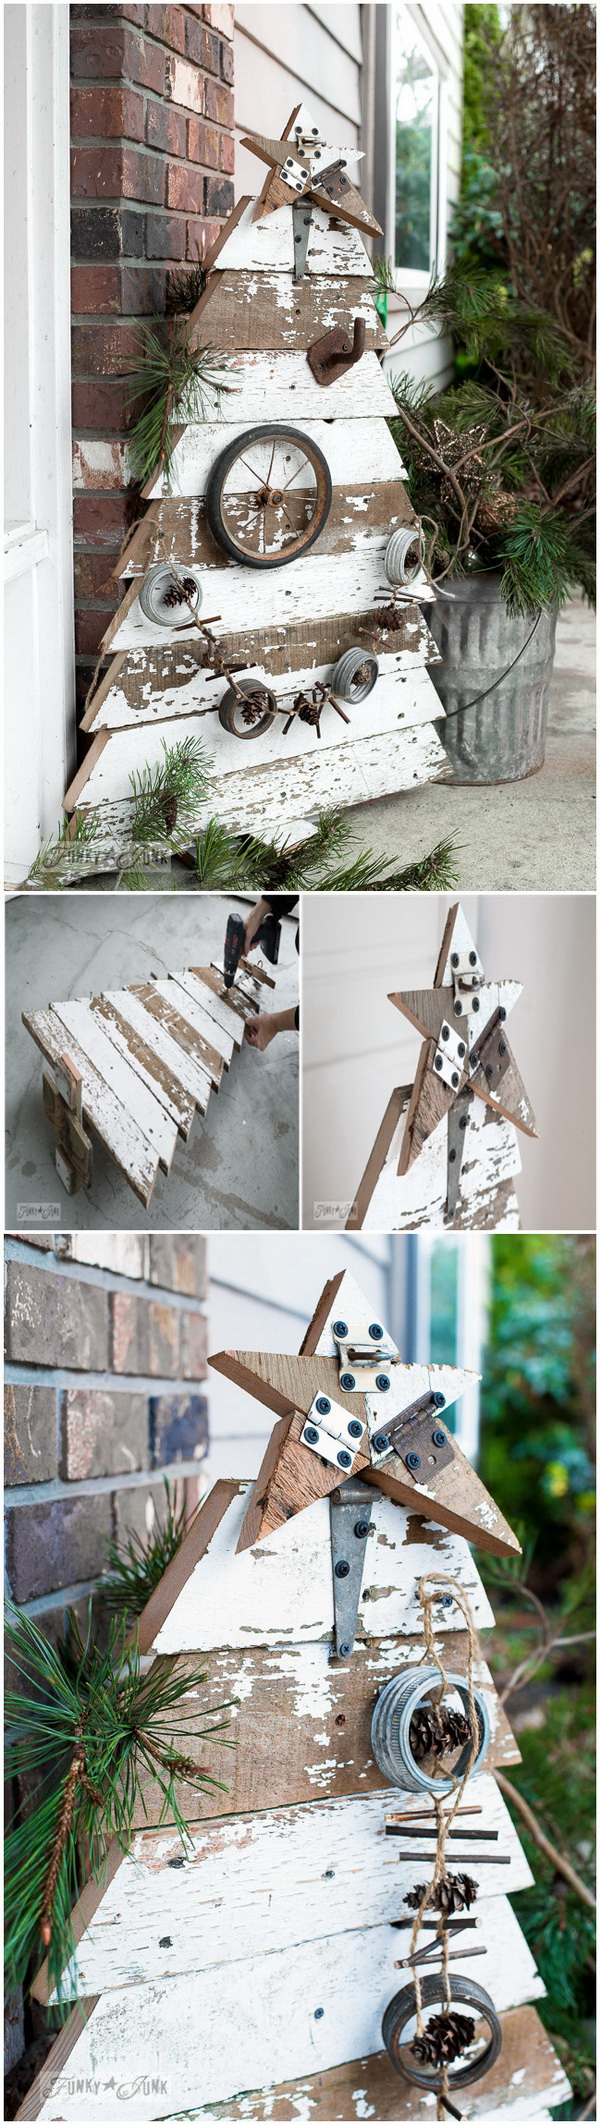 Reclaimed Wood Christmas Tree And Star. This gorgeous tree is made from old wood planks or the pallets. You just need form the tree with the wood and then give it a distressed look and add a few pinecones and other rustic decorations. It gives your outdoors that farmhouse look on the porch or in the front yard.